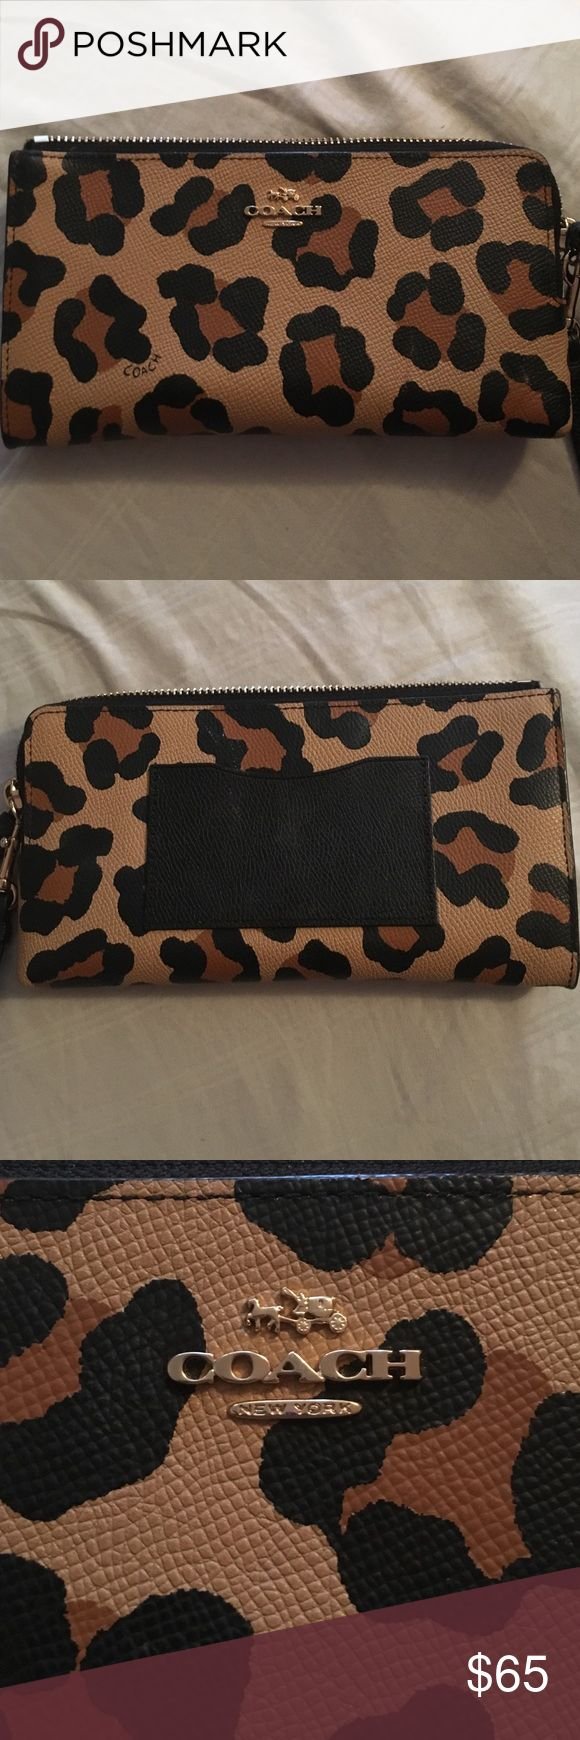 Coach Cheetah Wristlet Cheetah print wallet with detachable Wristlet! It is accordion style with lots of pockets and room for cards. No rips! No tears! No stains! Only been used a handful of times! Coach Bags Clutches & Wristlets